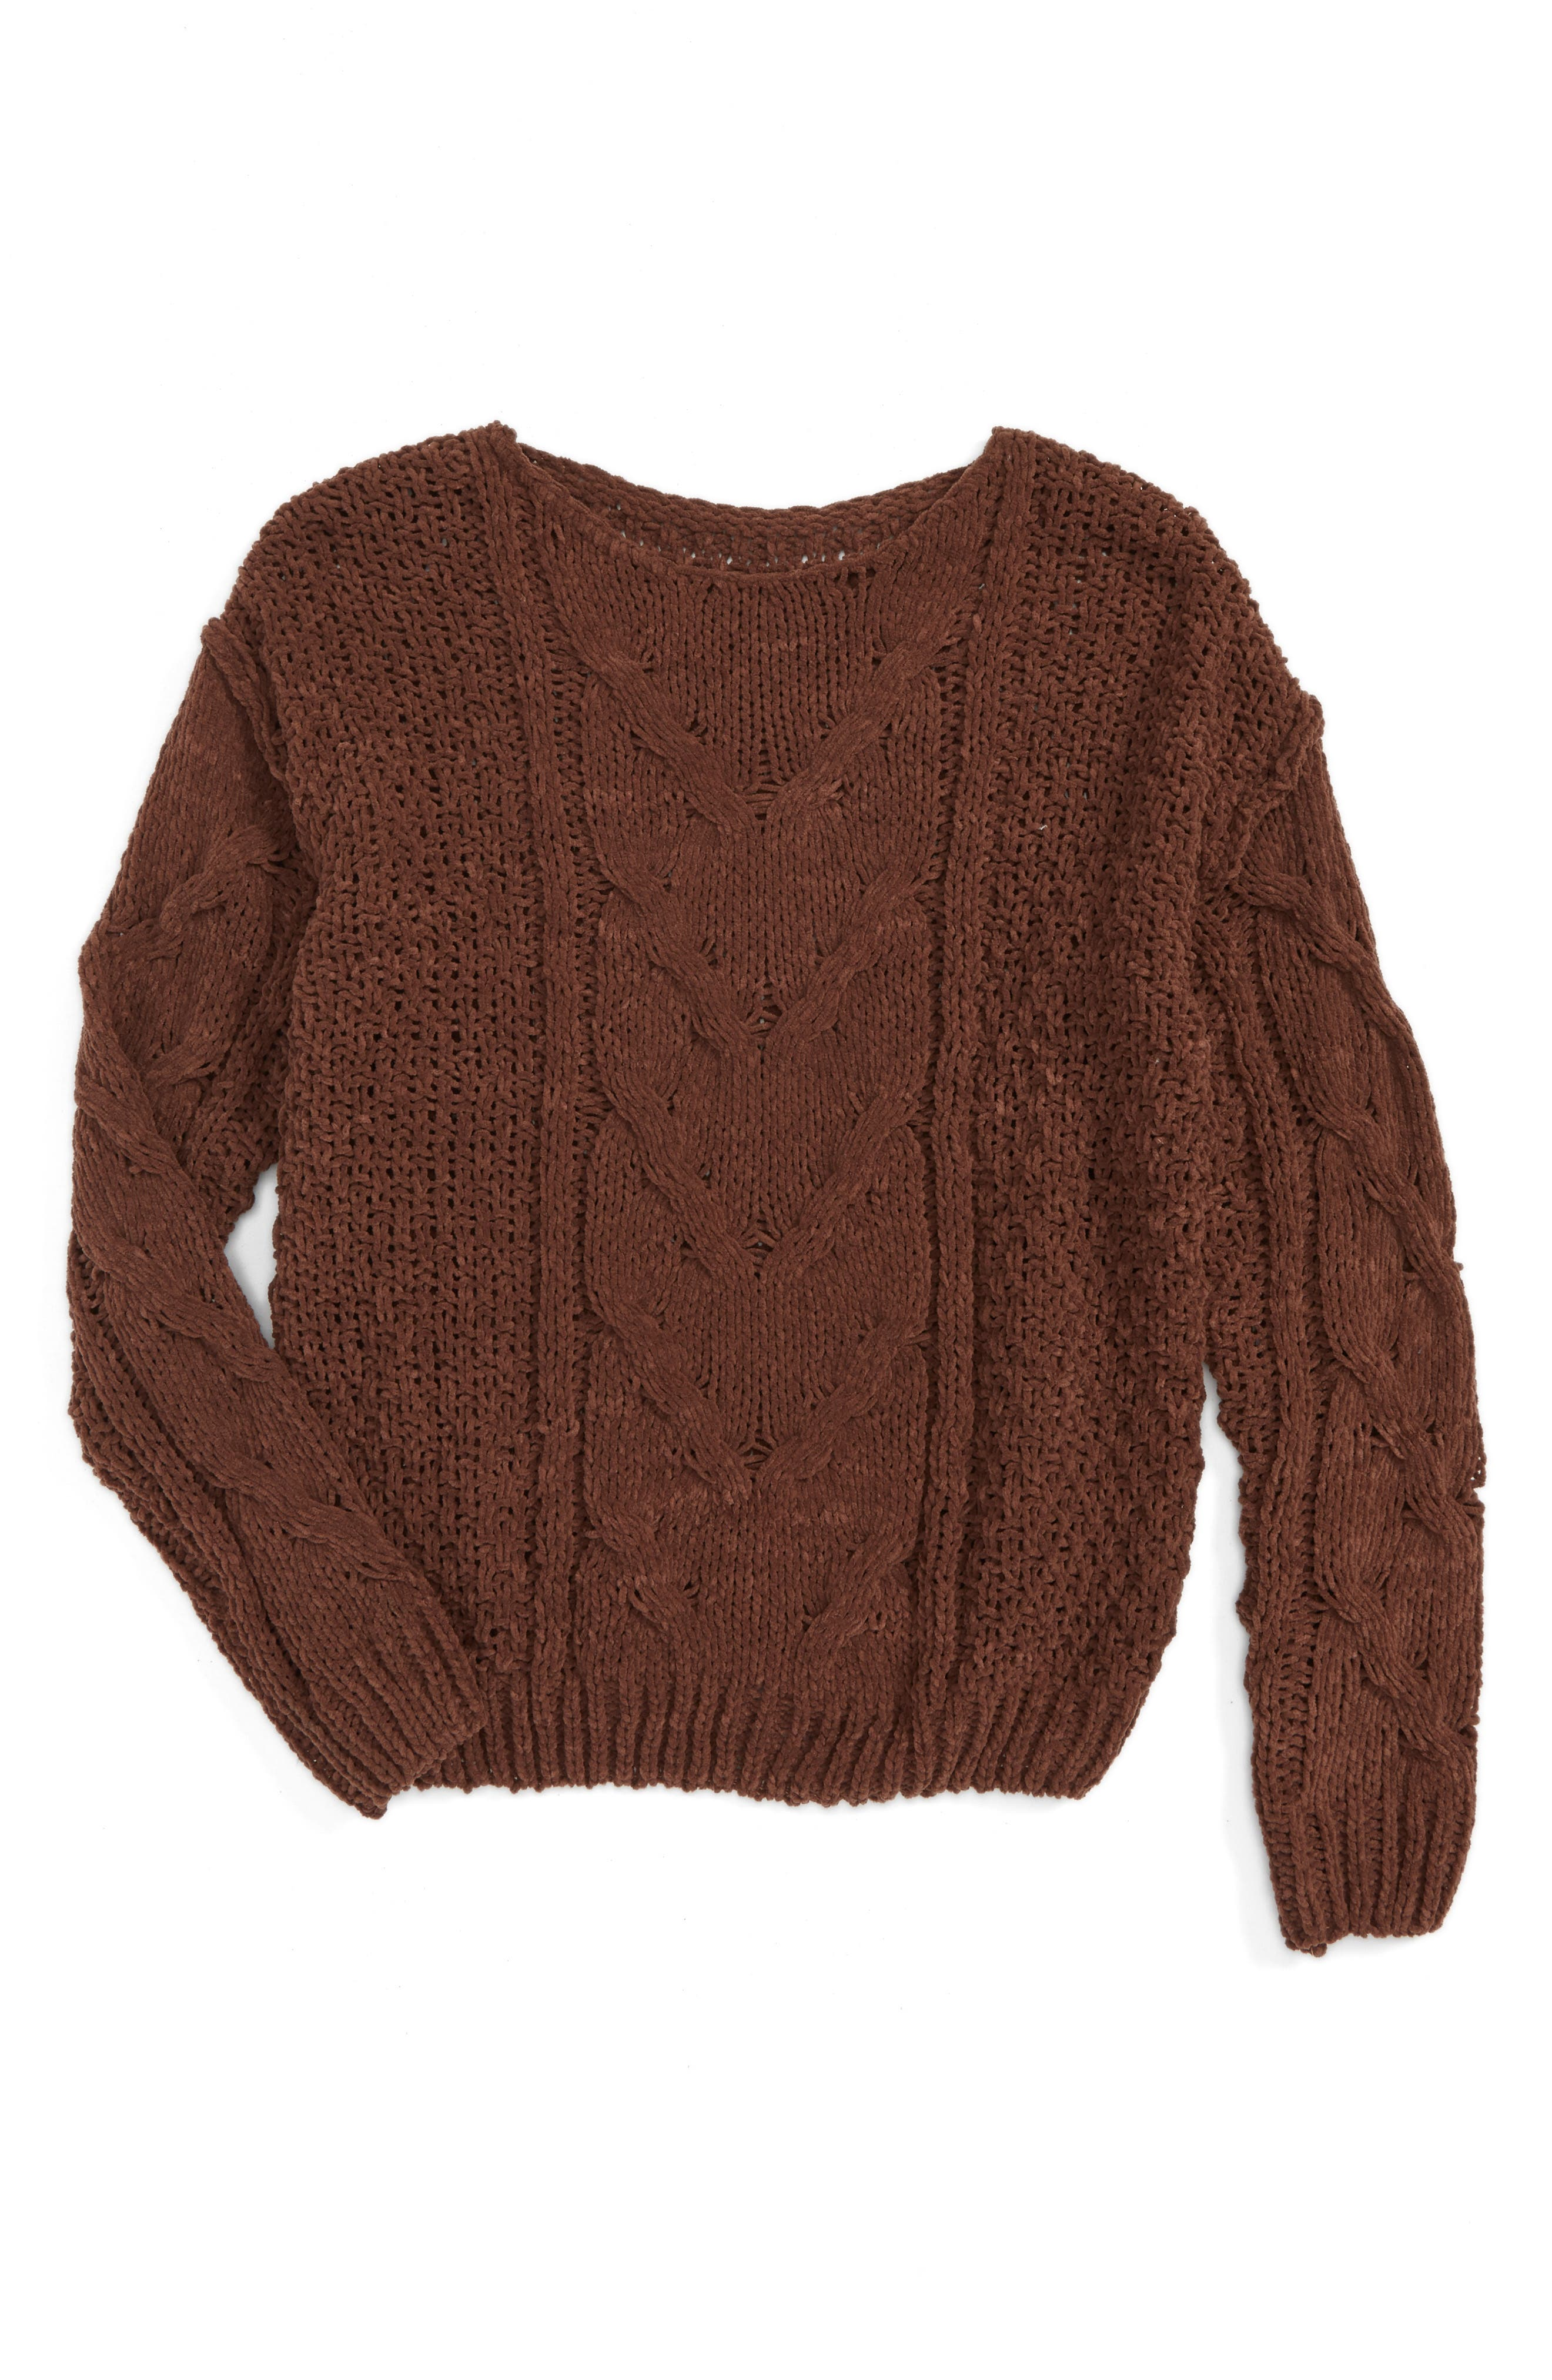 Woven Heart Cable Knit Sweater (Big Girls)